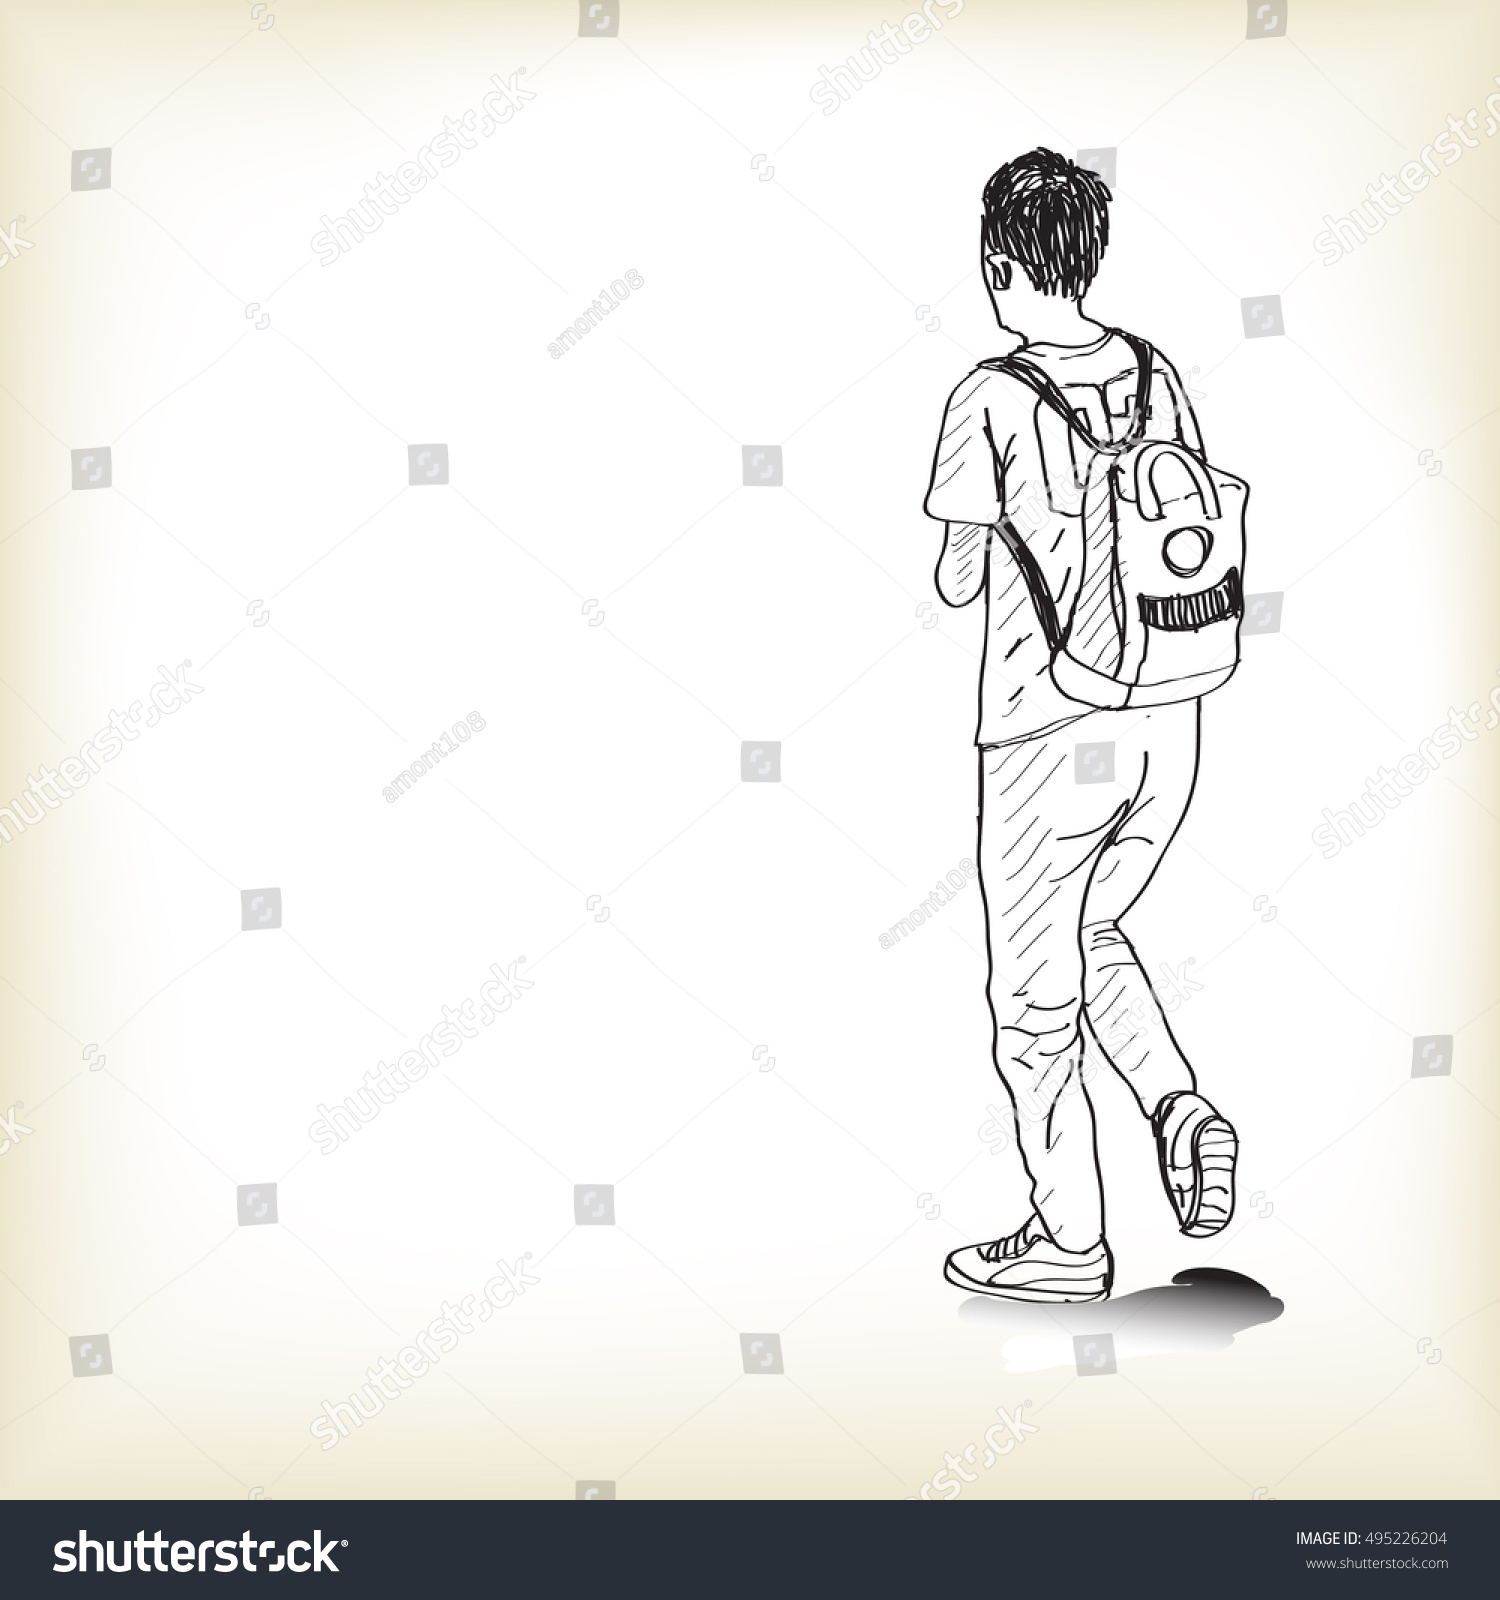 Sketch a boy walking with backpack to school free hand draw illustration vector